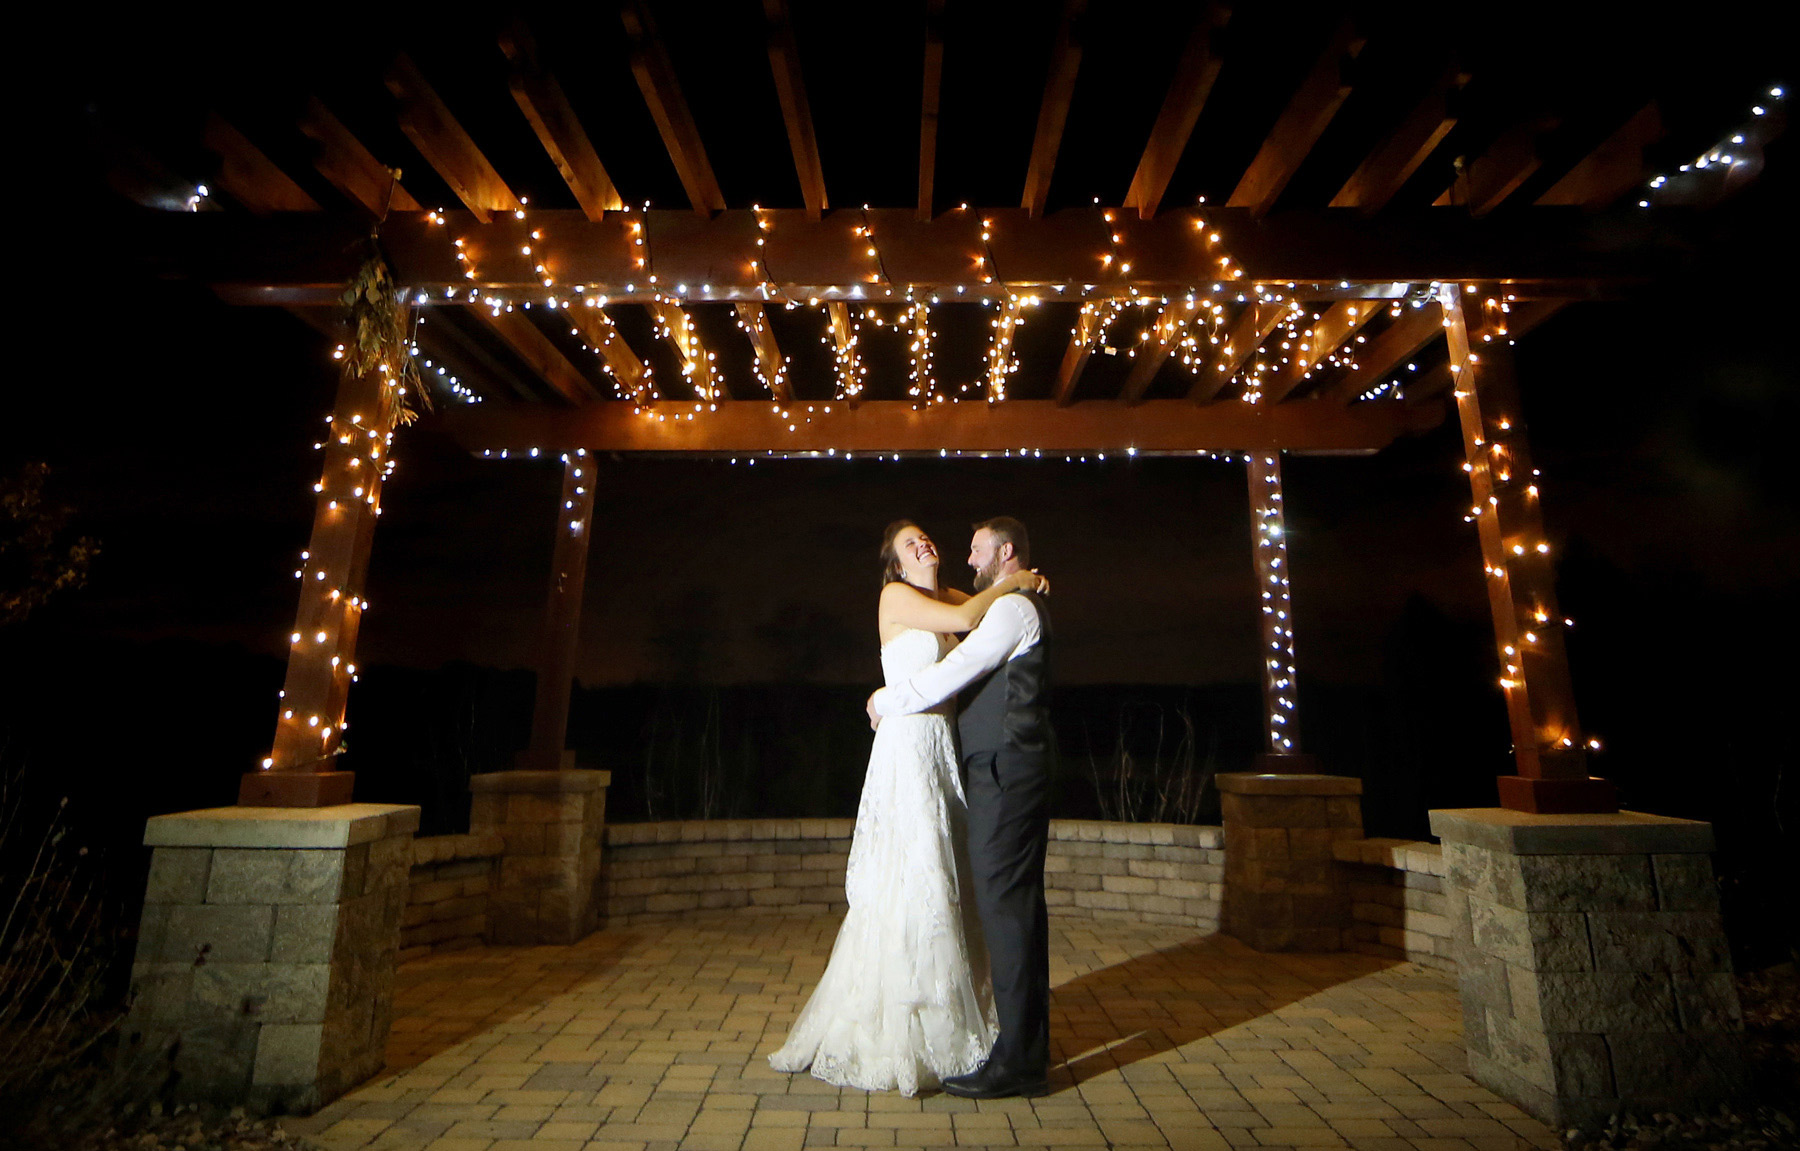 15-Minneapolis-Minnesota-Wedding-Photography-by-Vick-Photography-Prior-Lake-Horse-and-Hunt-Club-Rustic-Night-Sarah-and-Steve.jpg